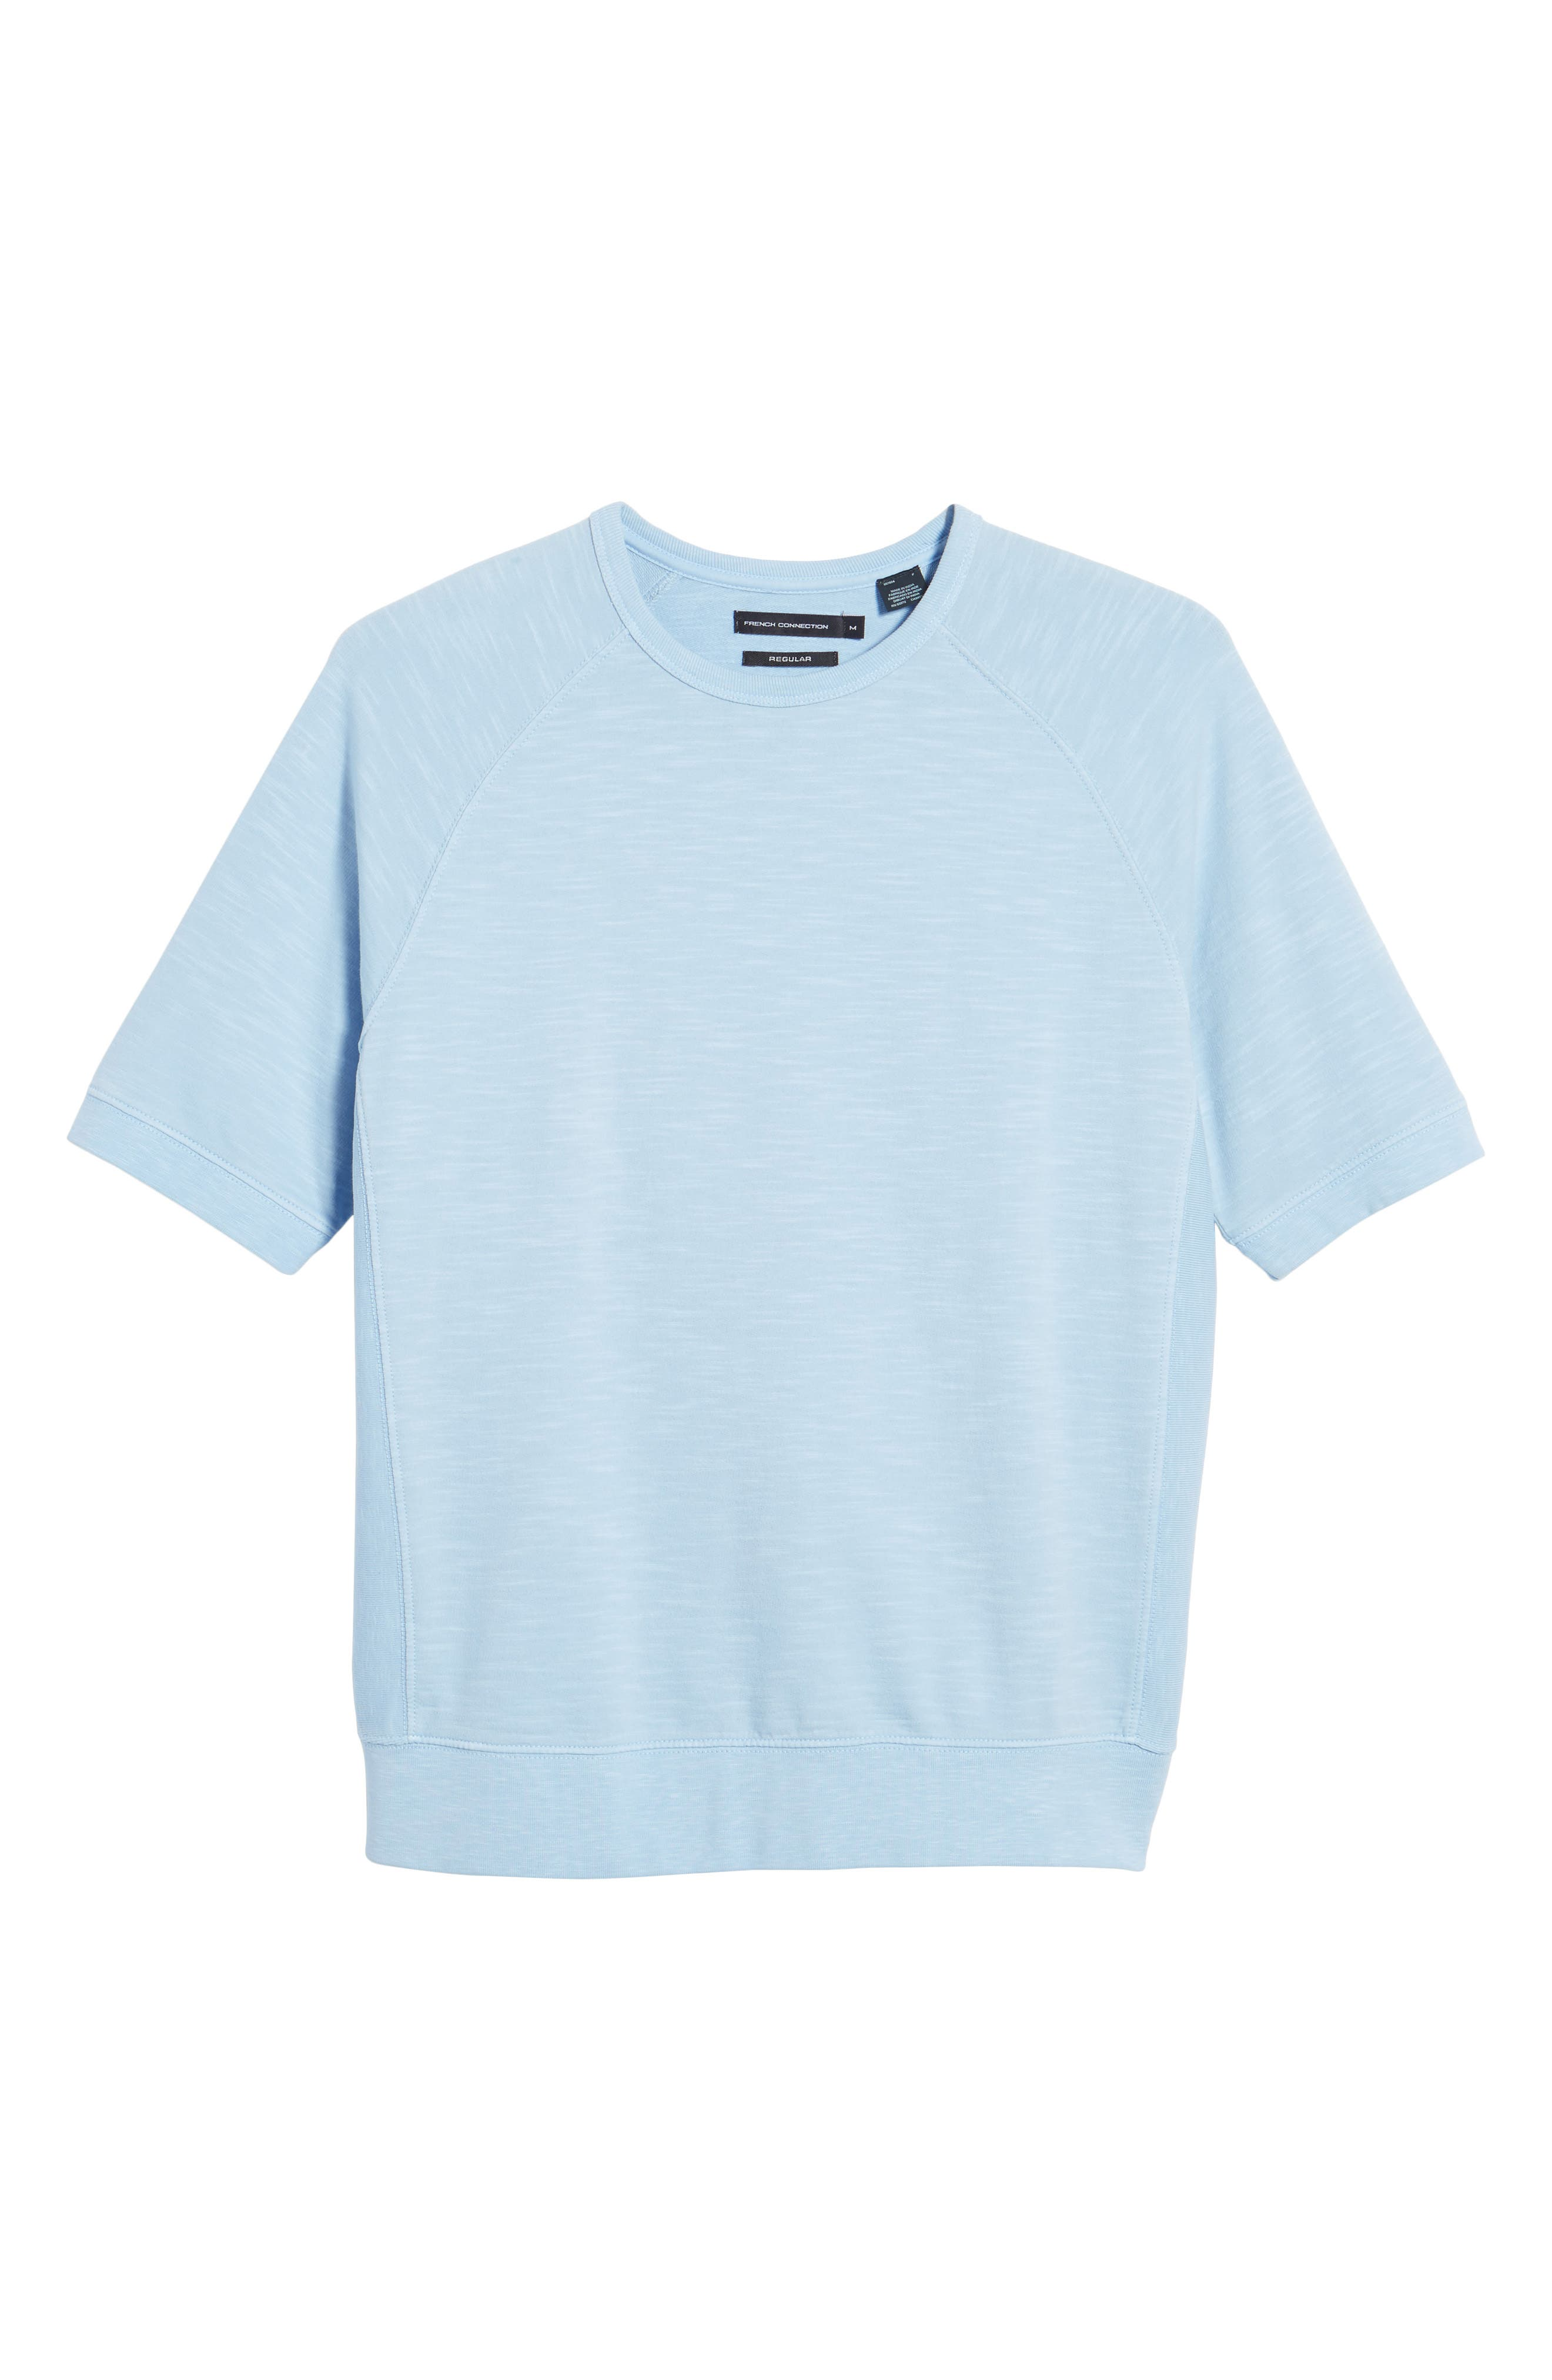 Workout Relaxed Fit Crewneck T-Shirt,                             Alternate thumbnail 6, color,                             Sky Blue